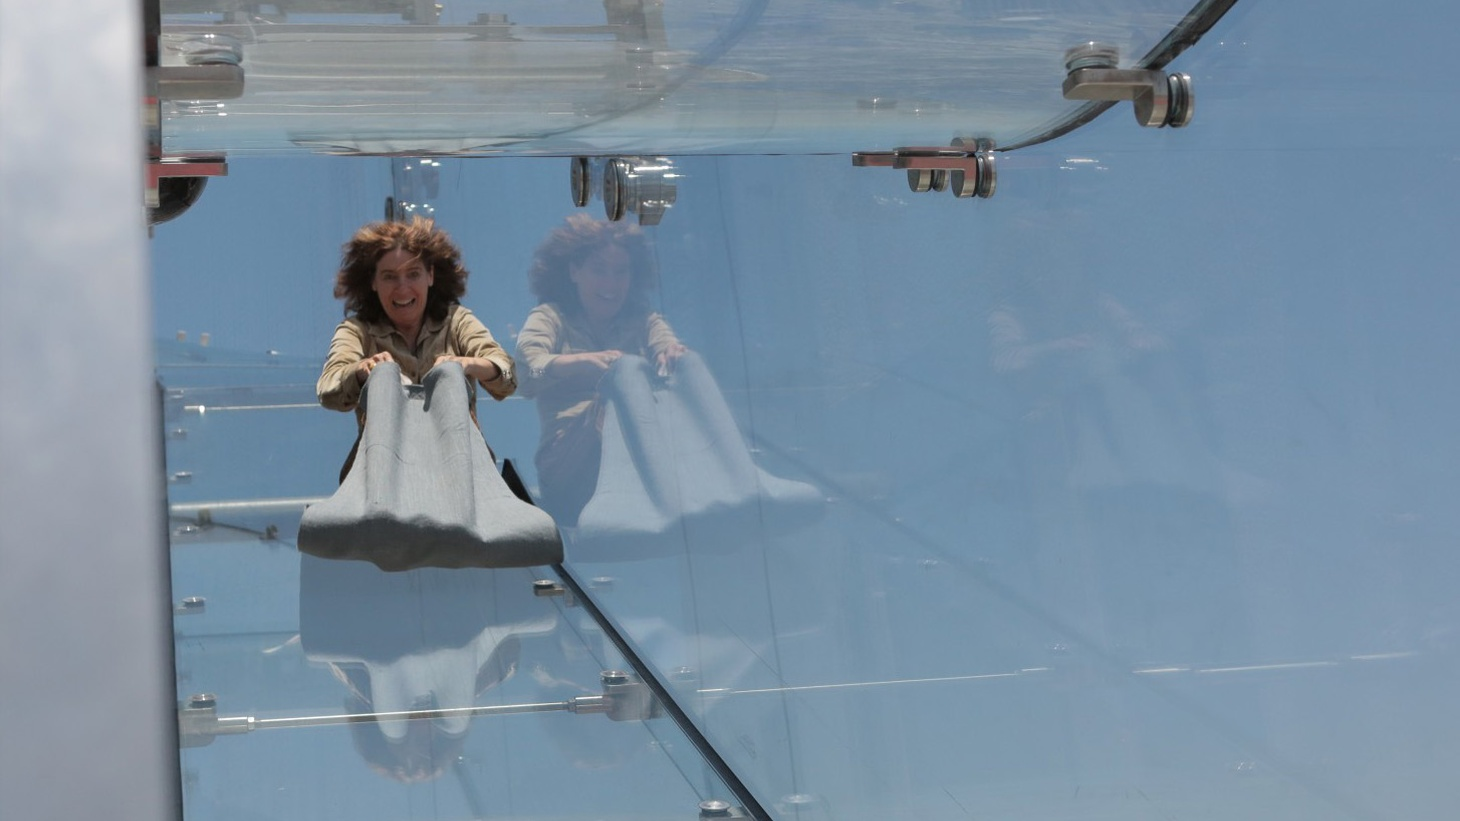 Interventions in the urban fabric: the new Skyslide brings fun to downtown's financial district. Will it attract more tenants? In Echo Park, a public mini-golf course gives new meaning to an empty site. And British design collective Assemble recently checked out the Coachella Valley. Why?